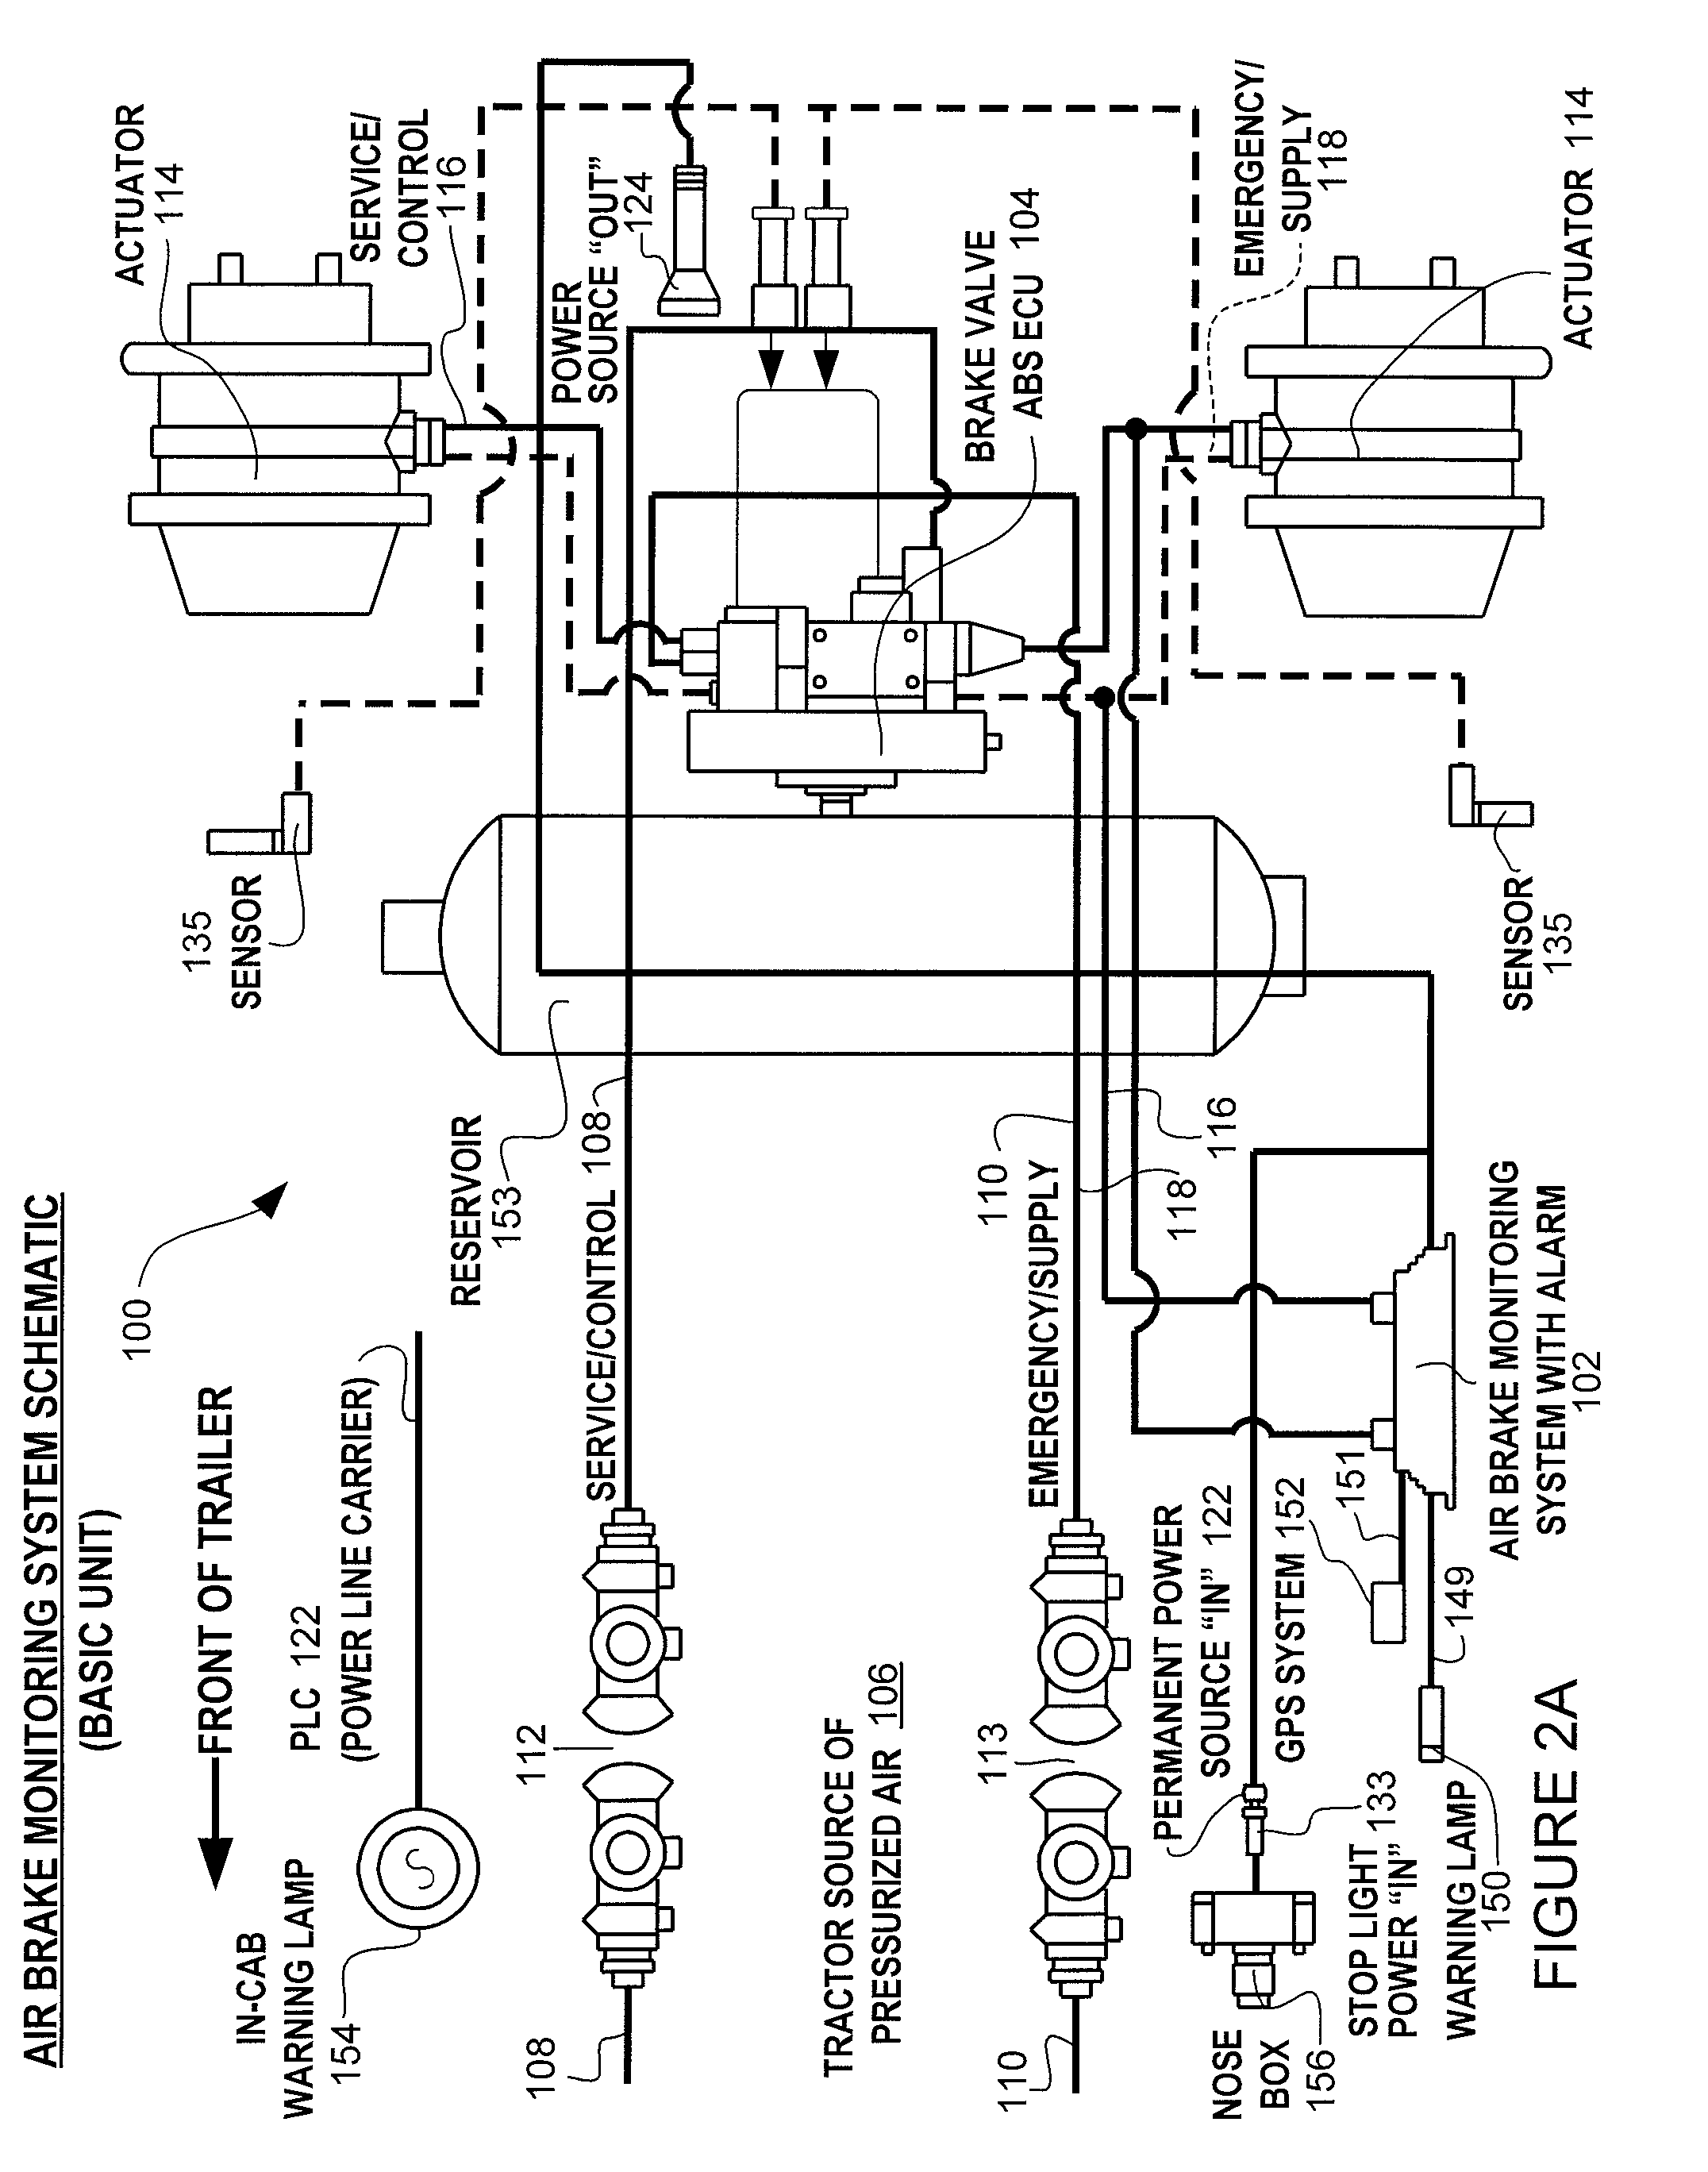 John Deere D100 Wiring Diagram besides Toyota Land Cruiser Fj25 Electrical also Wabco Abs Wiring System Diagram furthermore YD9m 8474 besides Pictures Collection Of John Deere L130 Wiring Diagram. on john deere 120 wiring harness